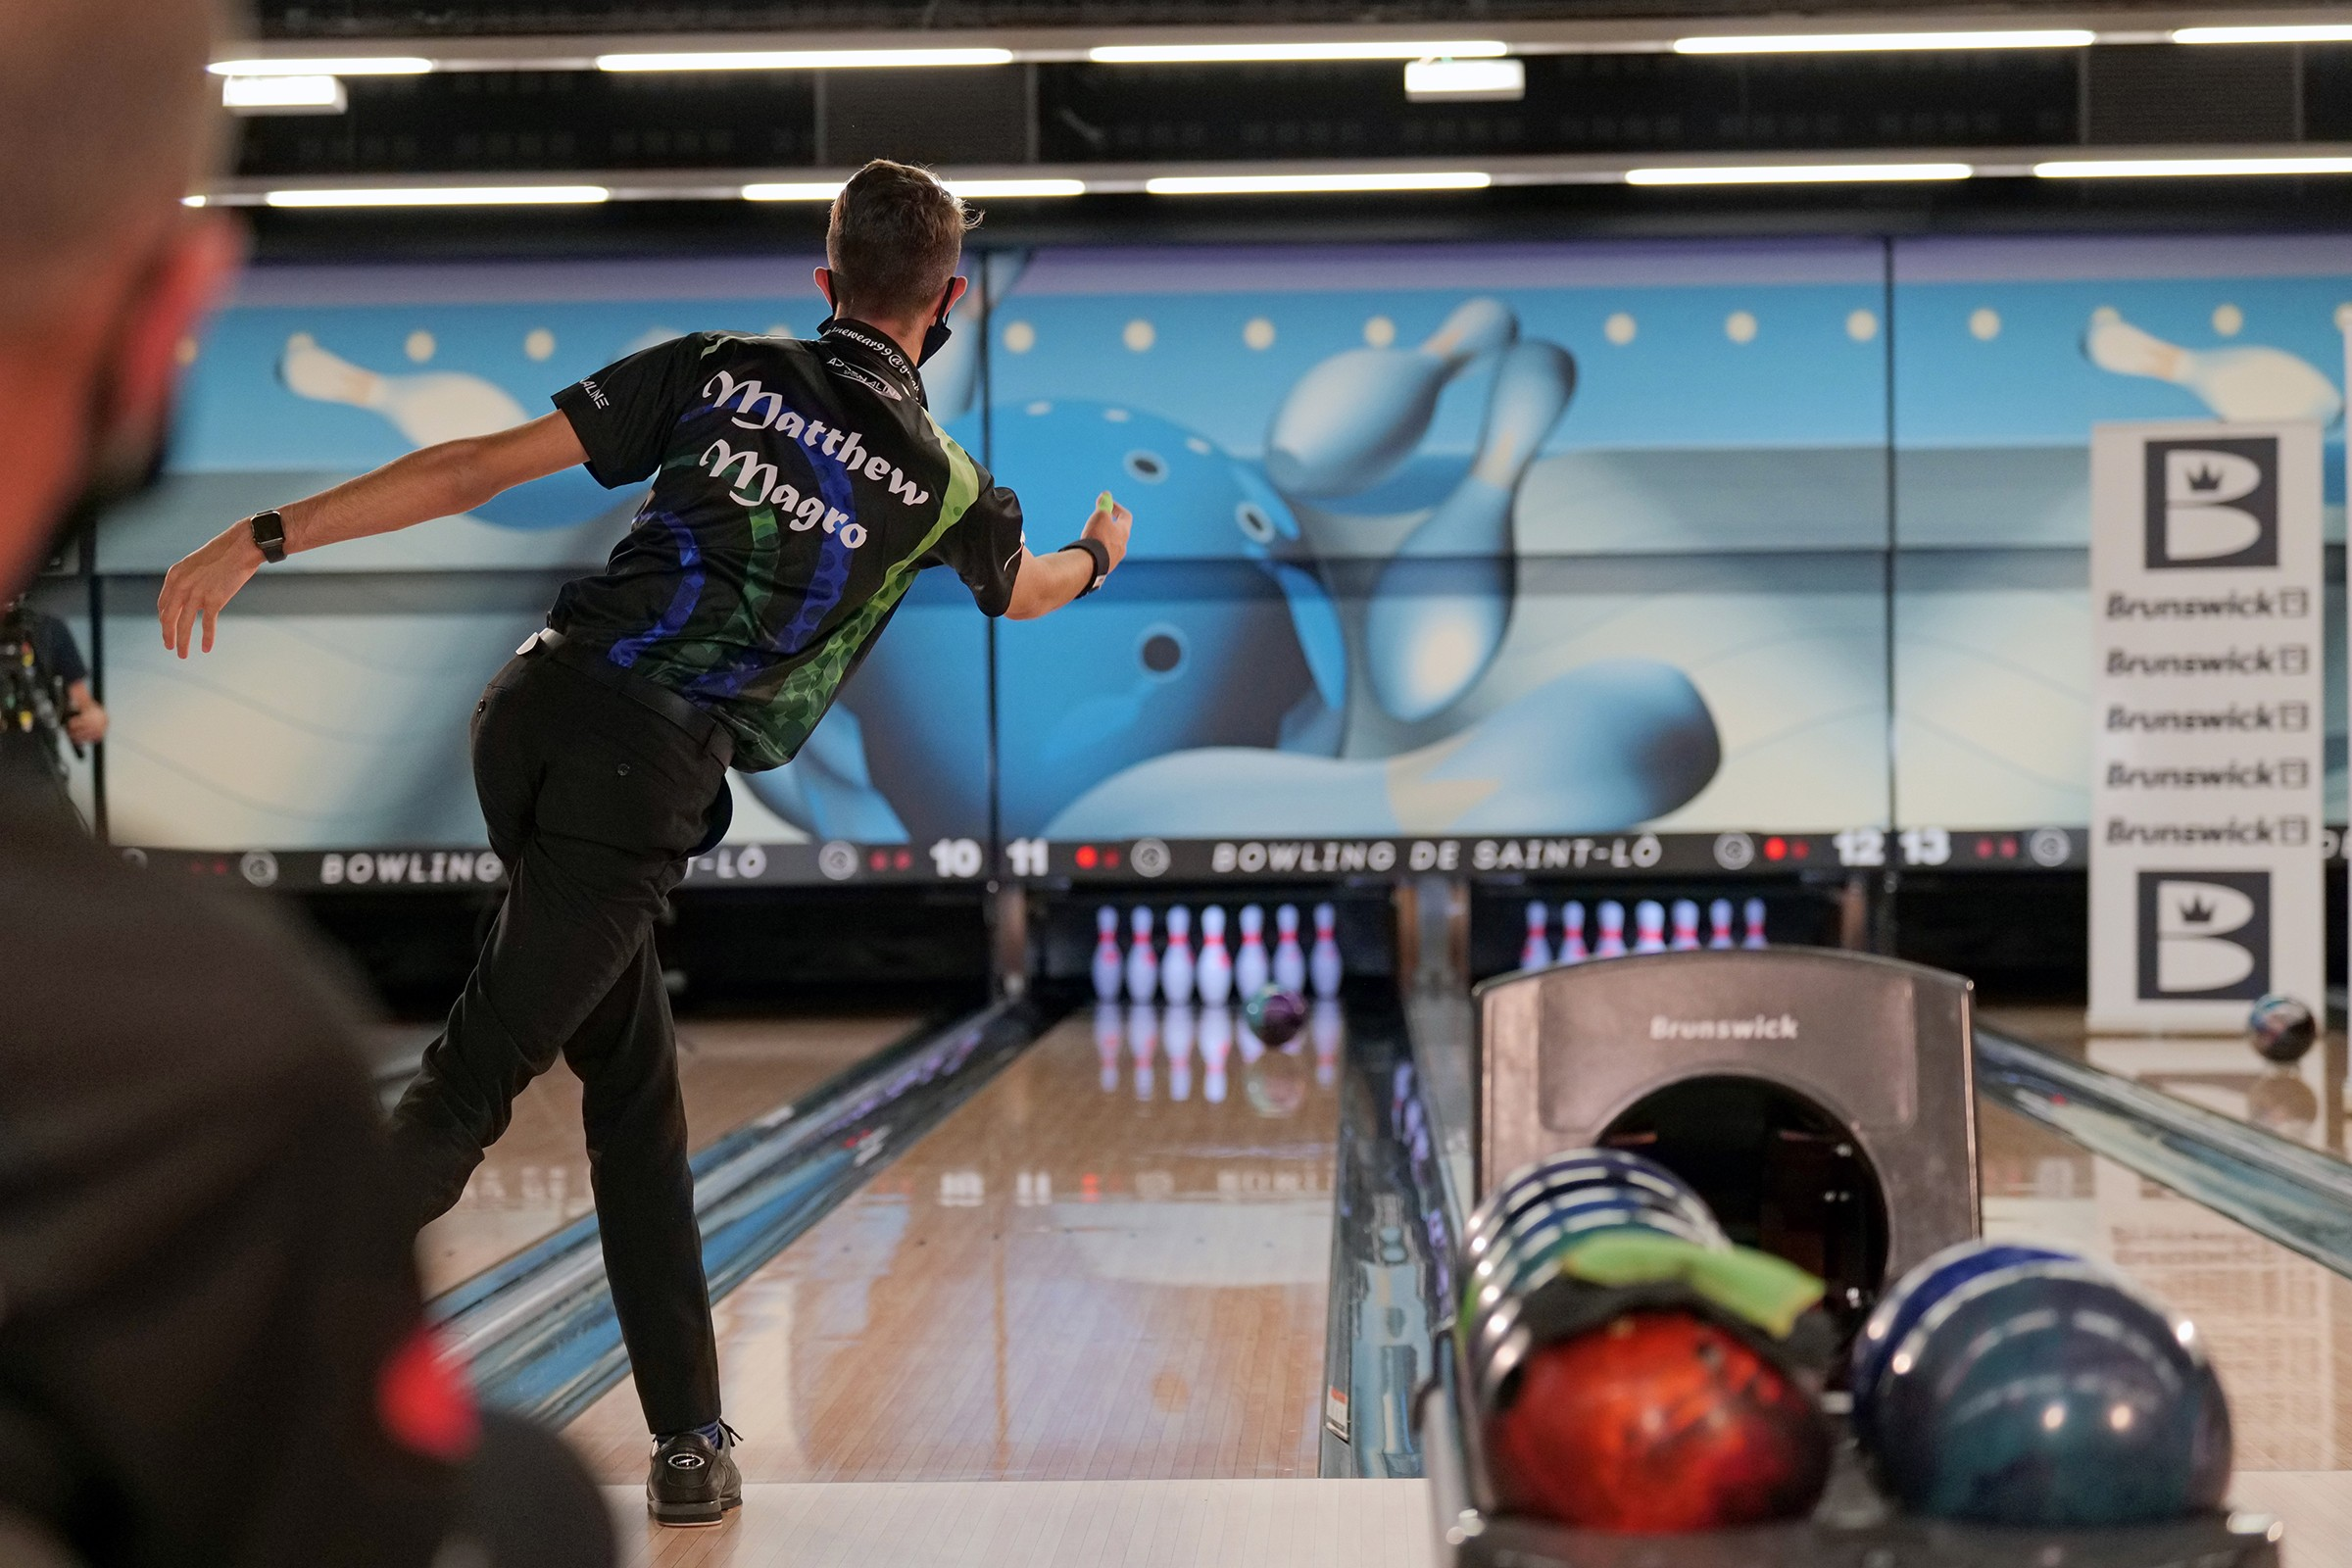 Bowling promotion tour 2020 saint lo photos ruel alain 020